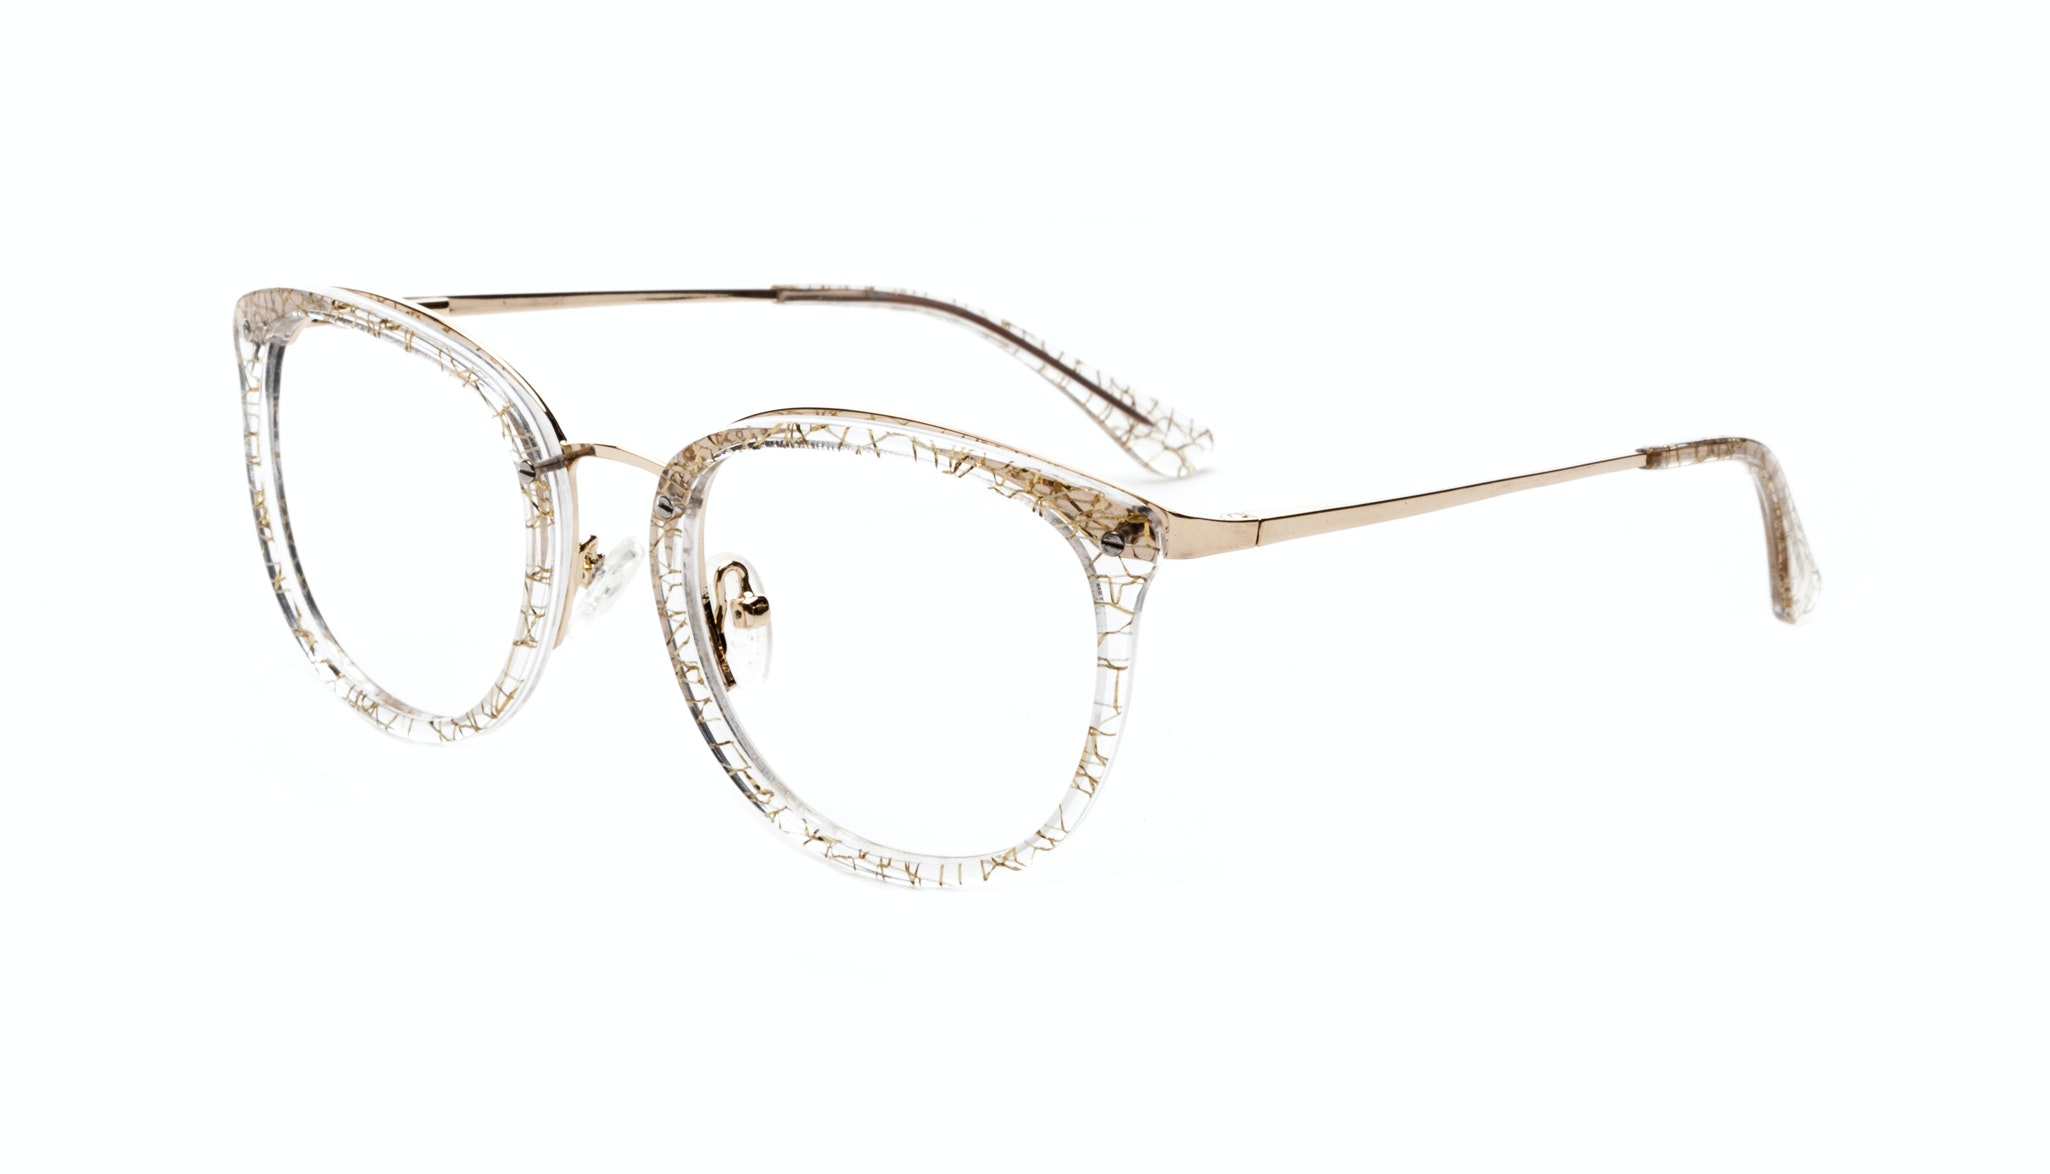 Affordable Fashion Glasses Round Eyeglasses Women Amaze Champagne Tilt